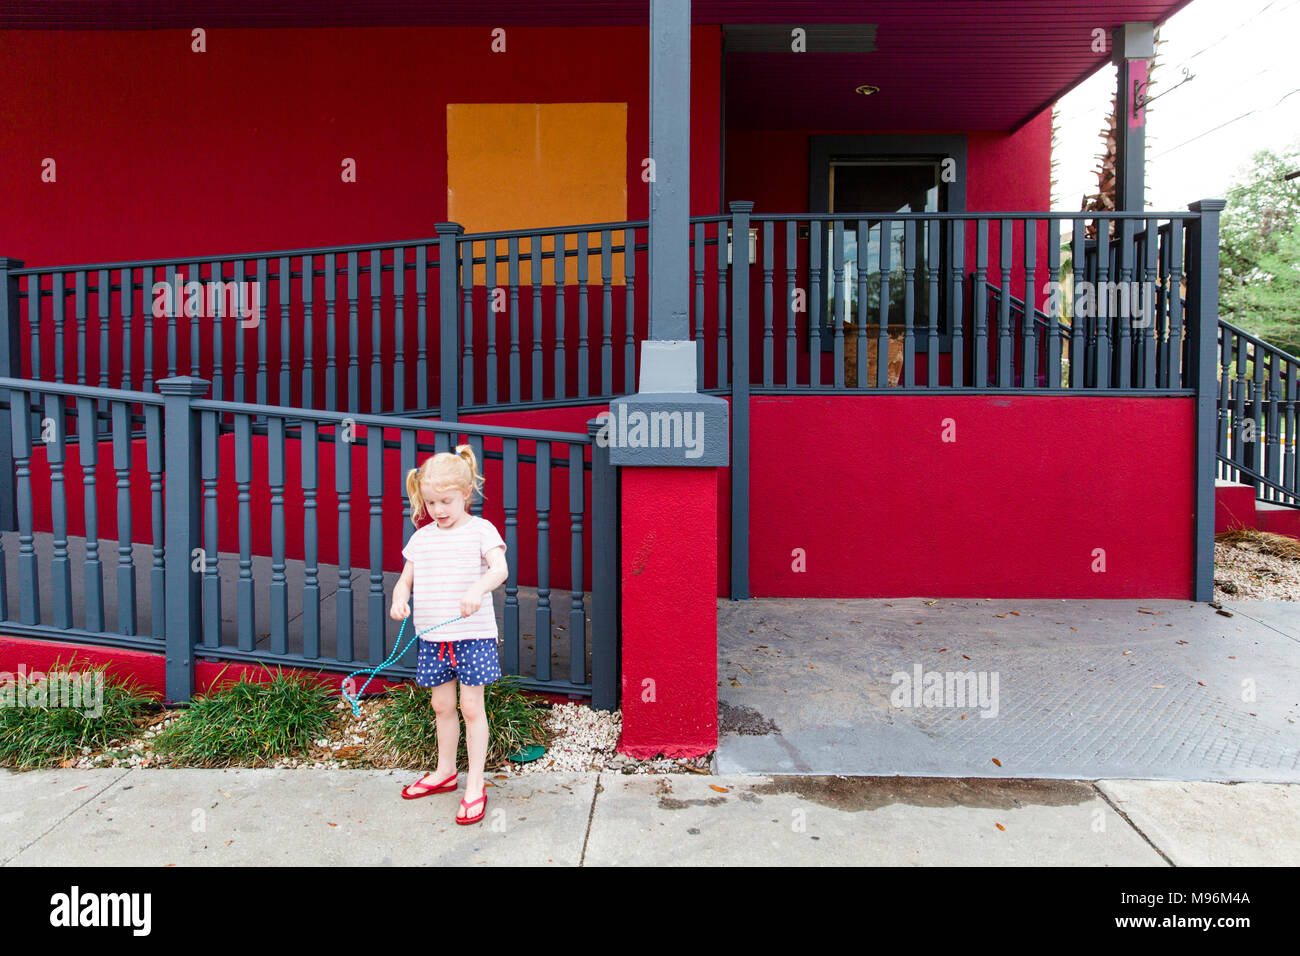 Girl outside of red building - Stock Image